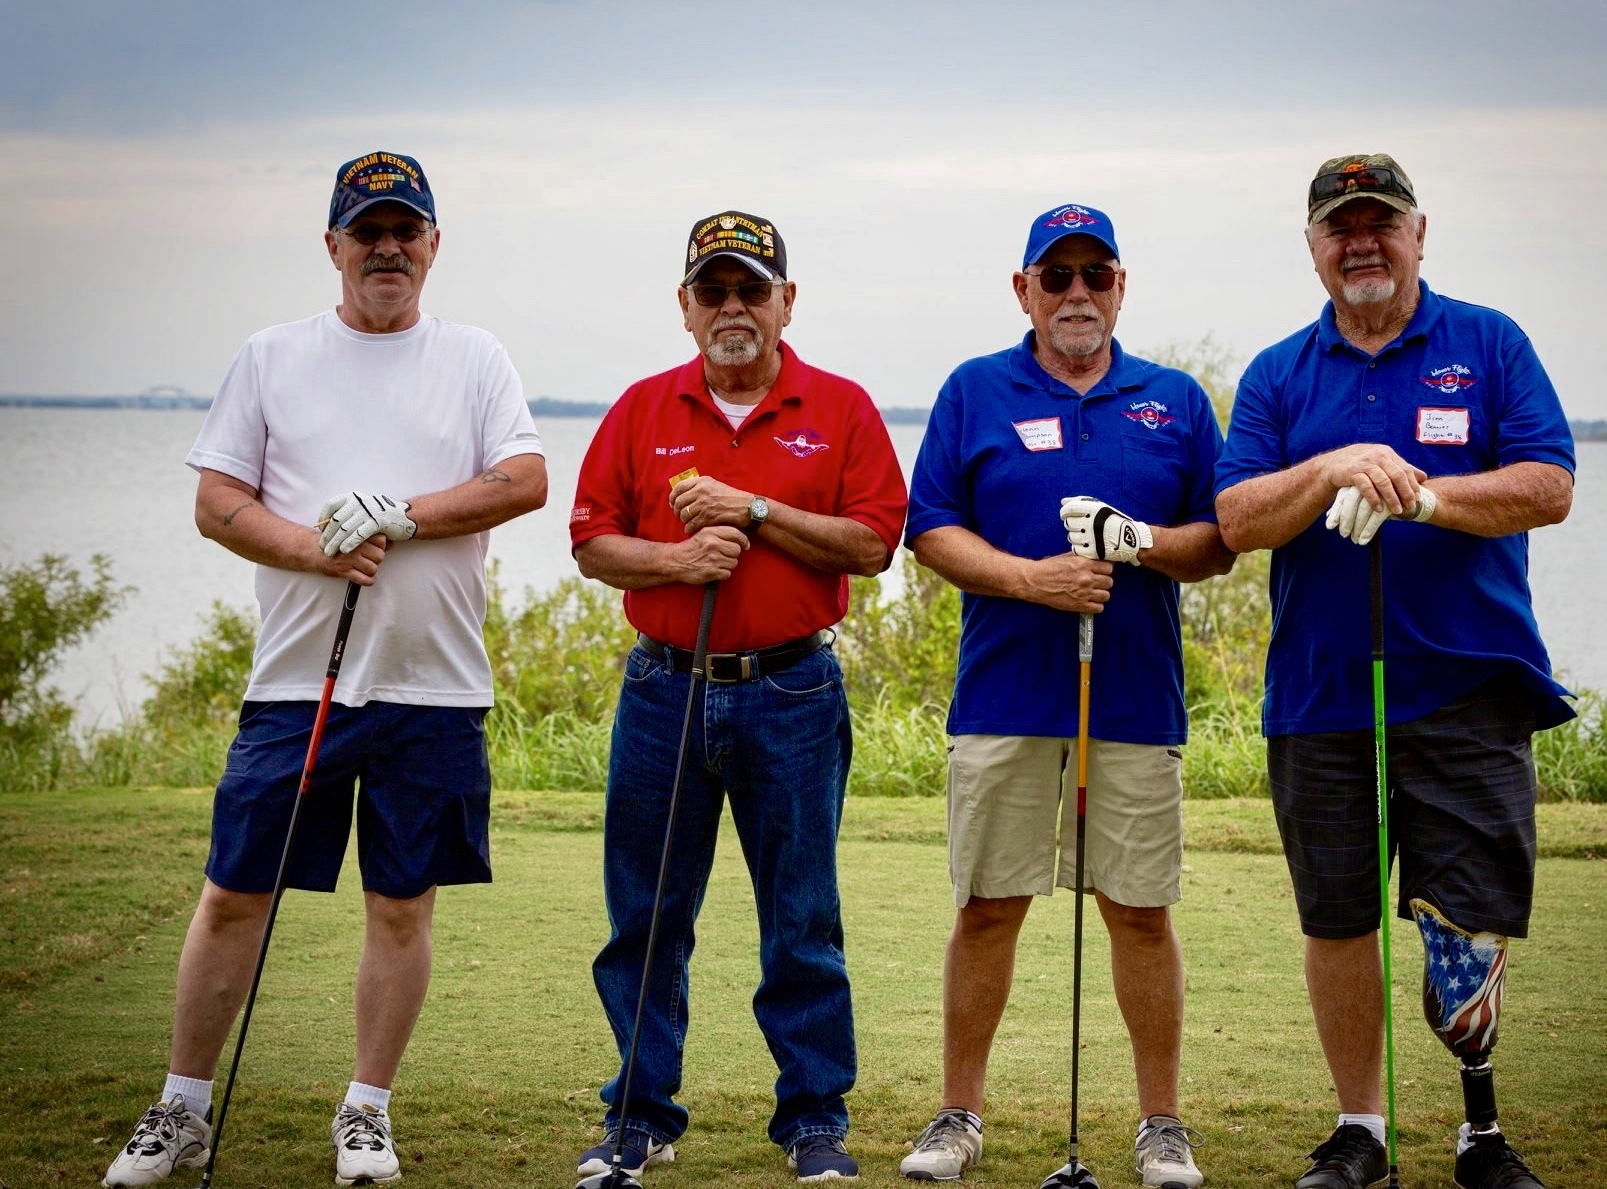 Honor Flight DFW 9th Annual Golf Classic gallery image #29